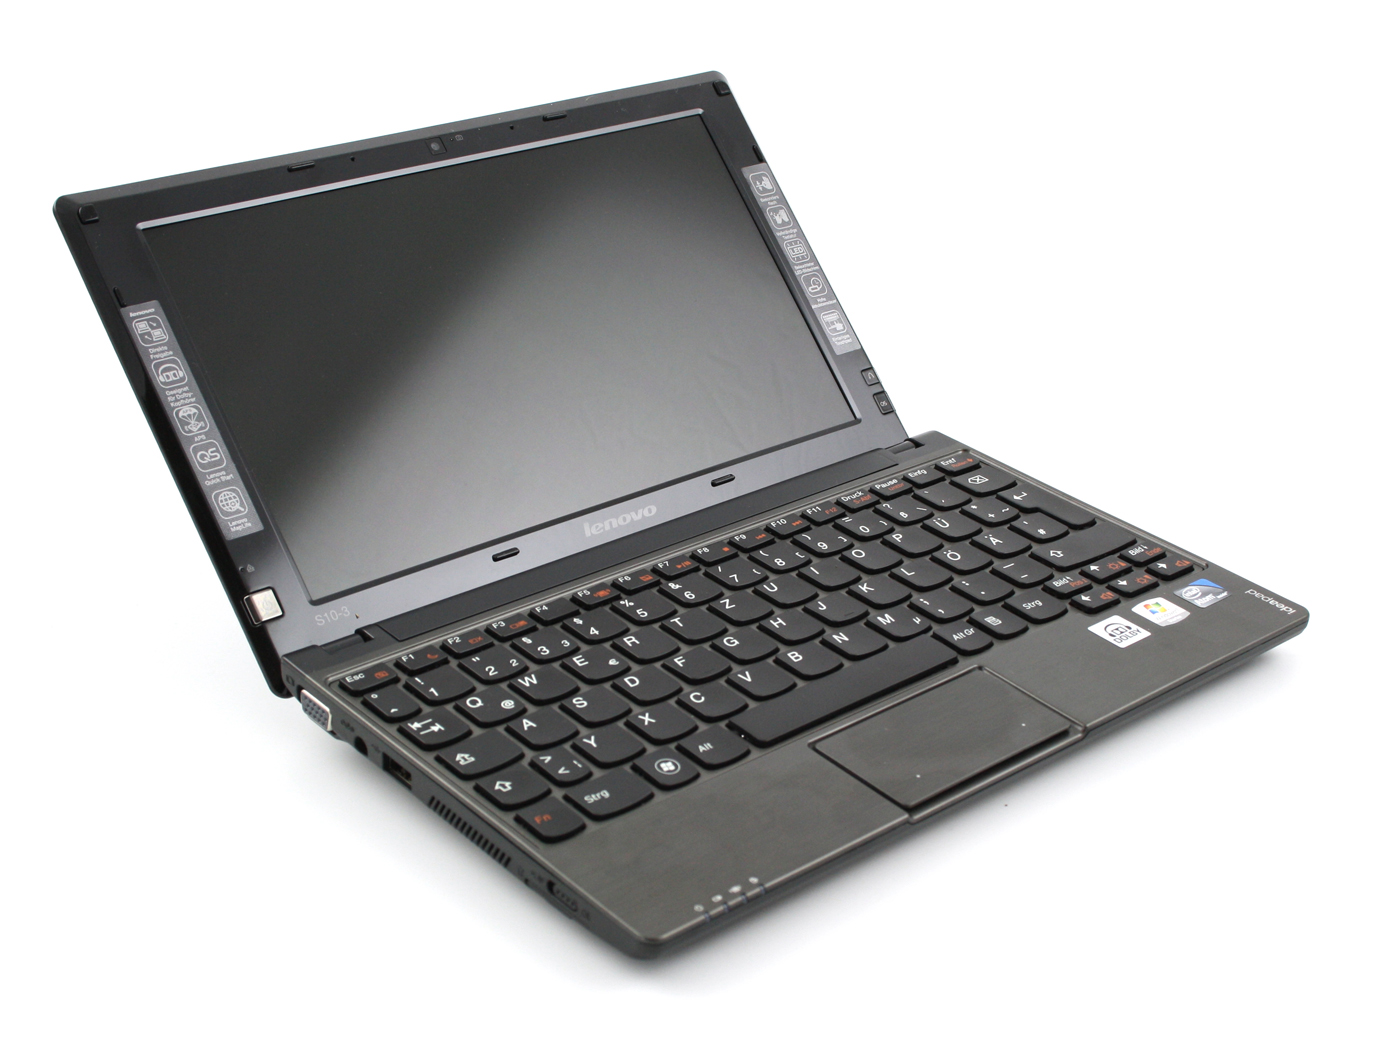 Lenovo Ideapad S10 3 Notebookcheck Net External Reviews